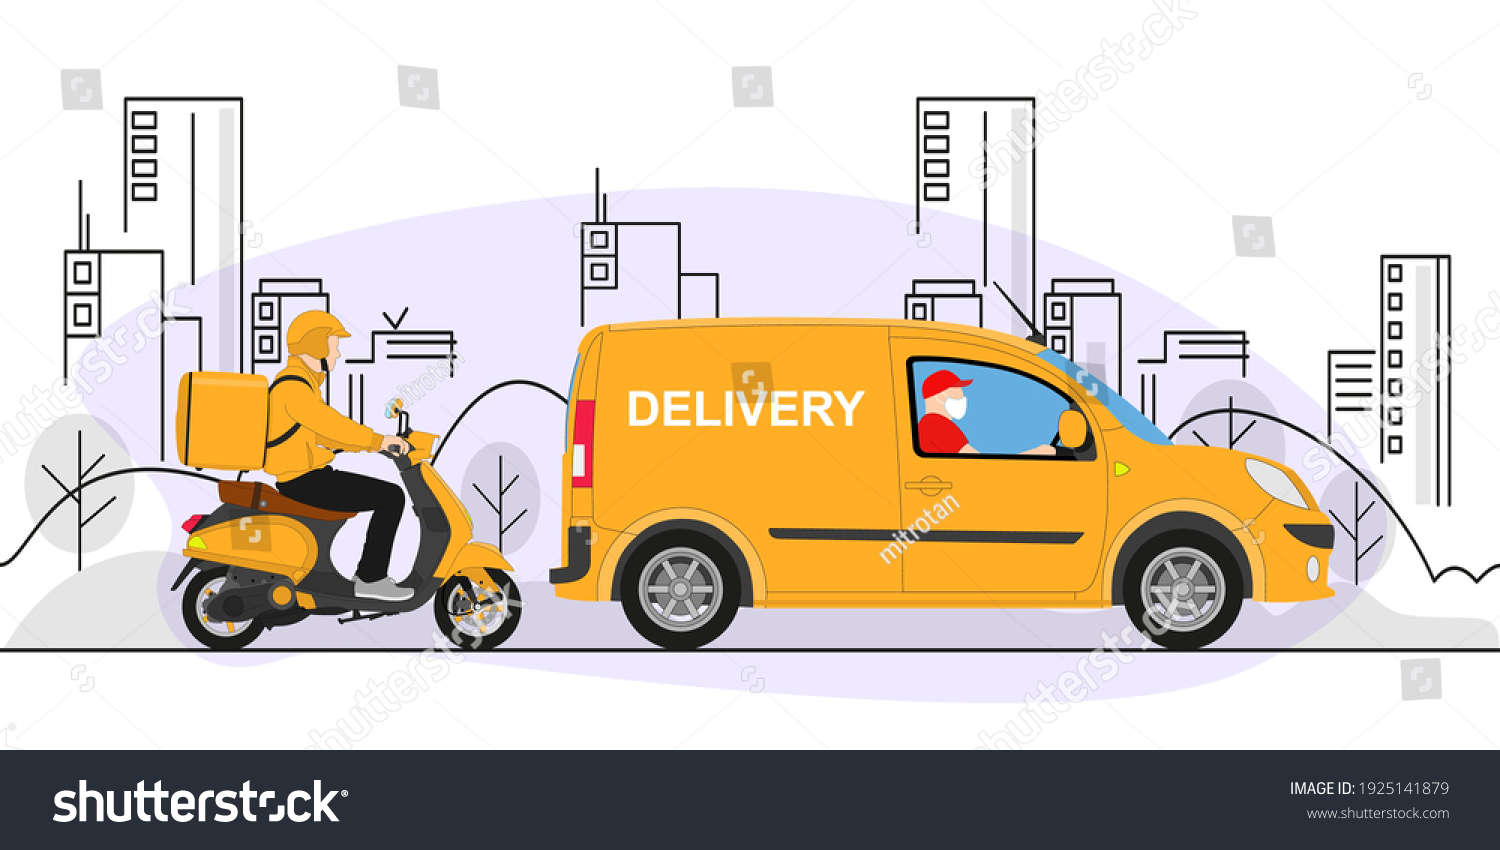 Online delivery service concept, online order tracking, delivery home and office. Warehouse, truck, scooter, delivery man in respiratory mask. Vector illustration. #1925141879